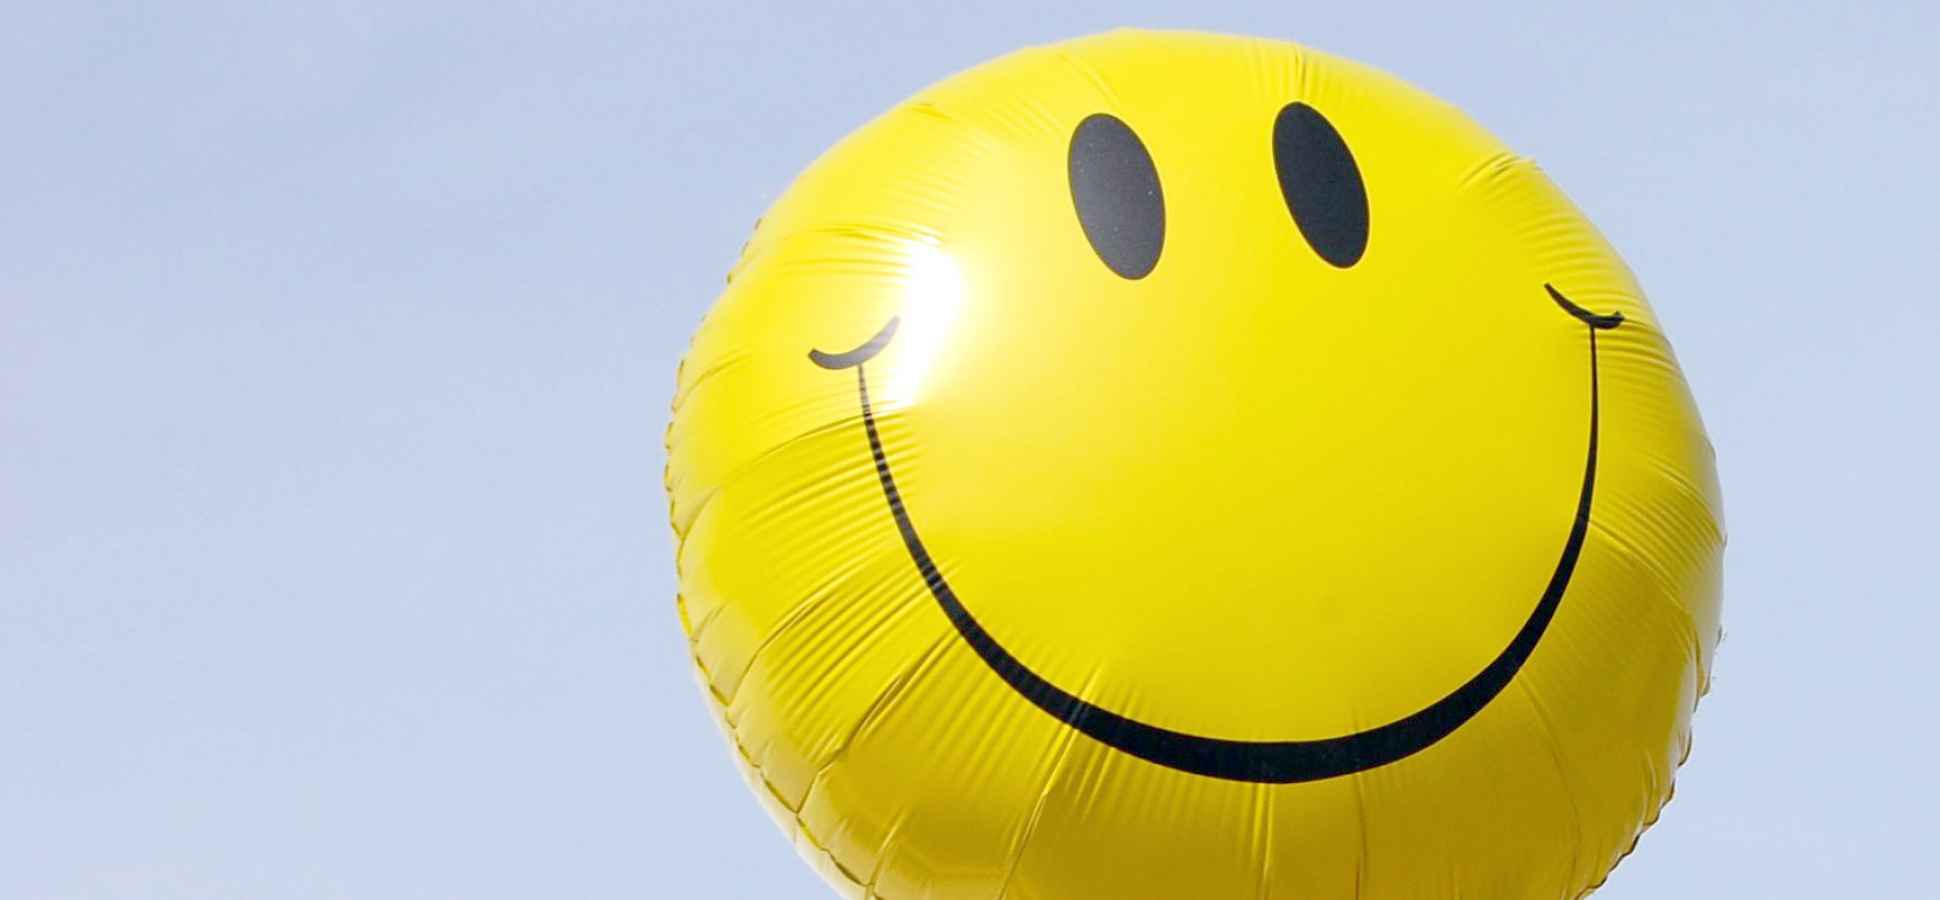 10 Surprisingly Counterintuitive Ways to Be Incredibly Happy